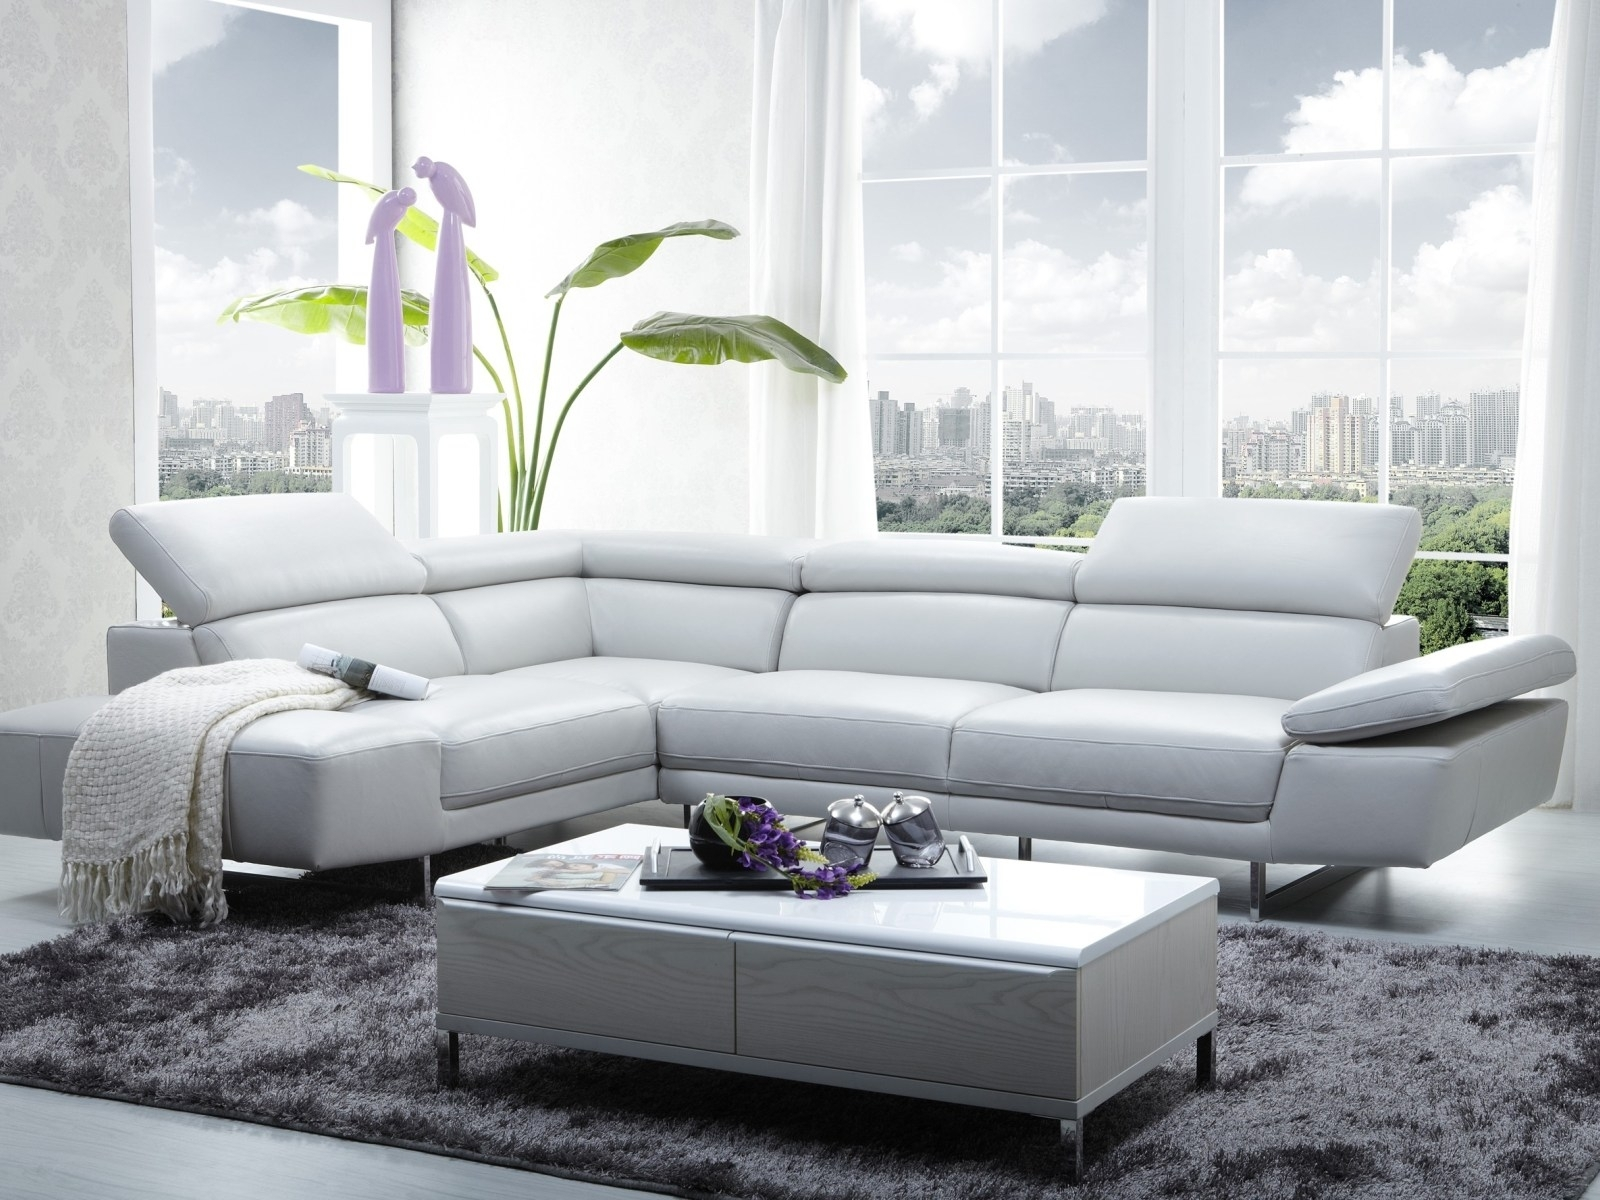 ▻ Sofa : 15 3058702 Poster P 1 A Modular Sofa That Can Rearrange intended for Sectional Sofas That Can Be Rearranged (Image 10 of 10)